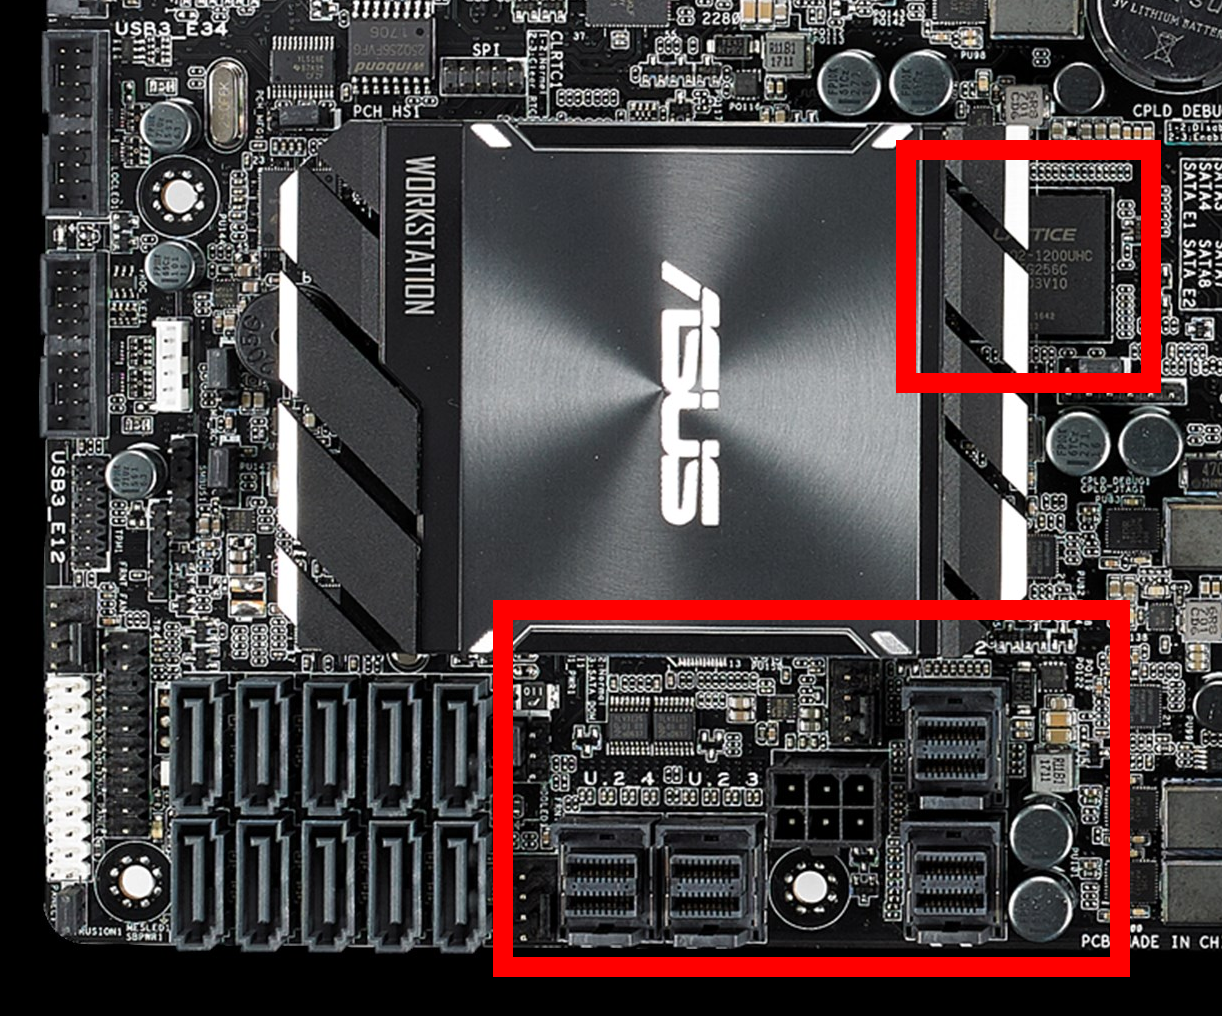 Dual Xeon Scalable Overclocking: ASUS WS C621E 'Sage